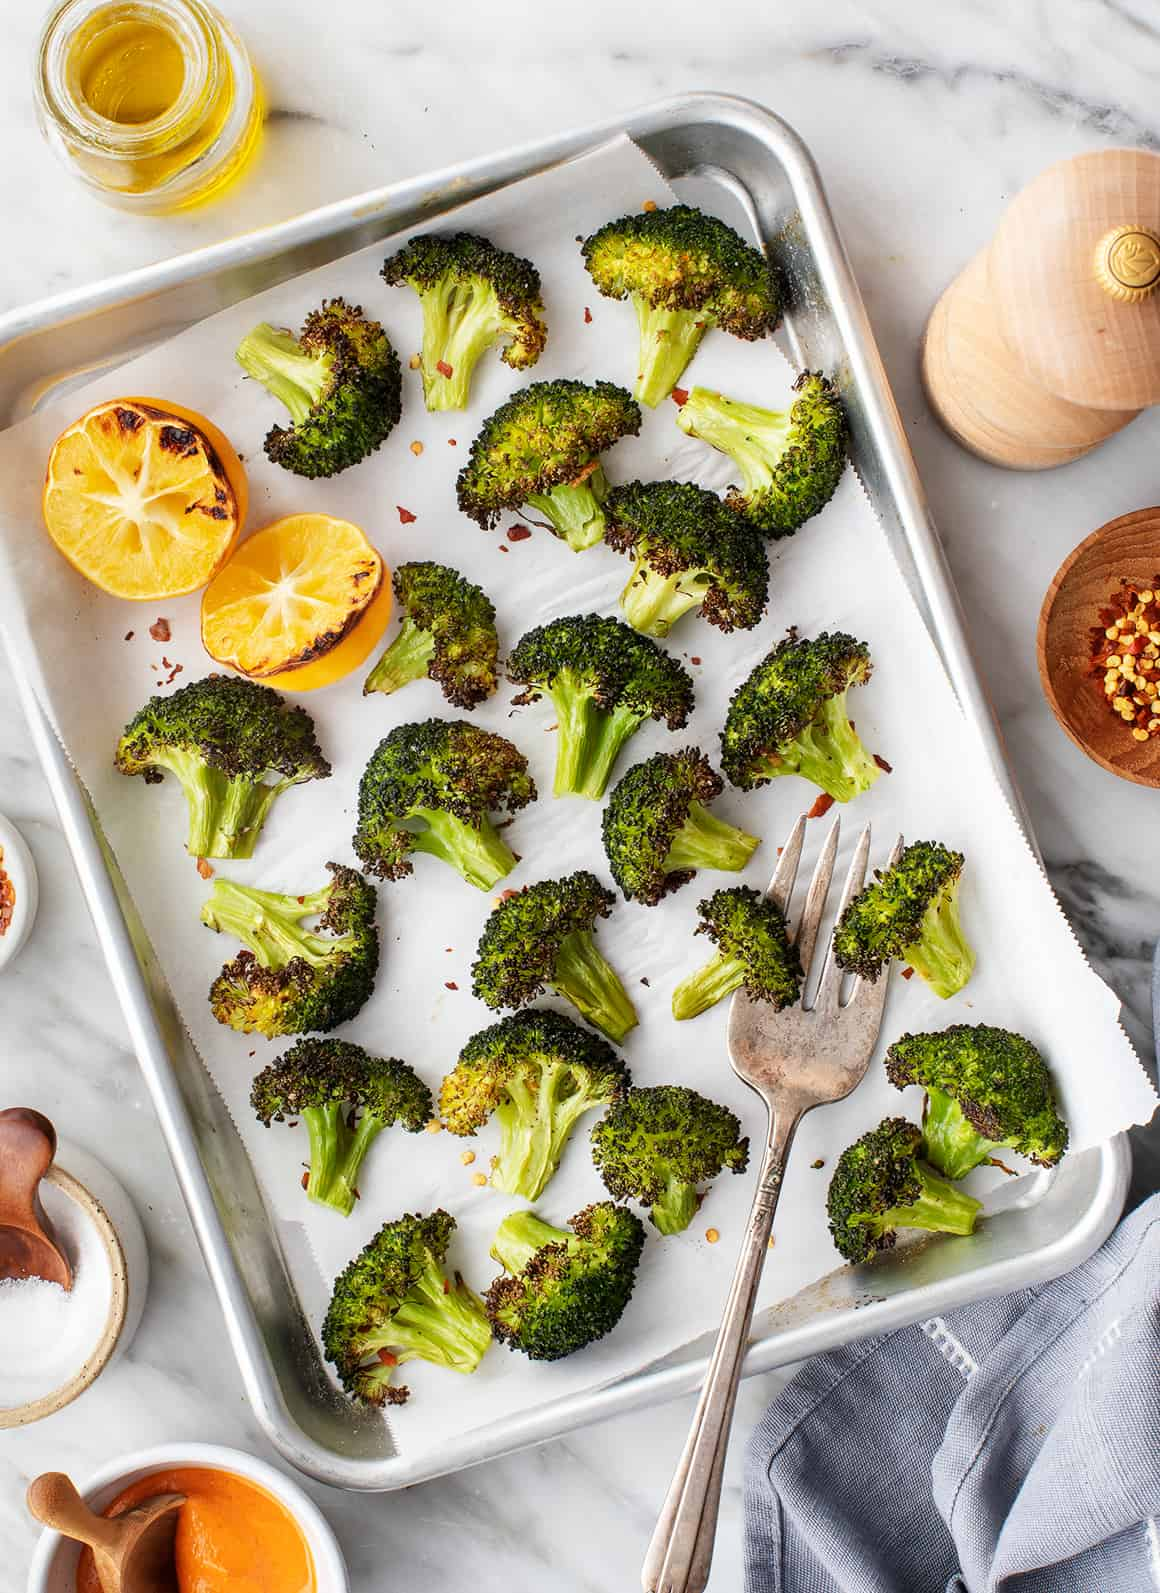 Roasted Broccoli with Meyer Lemon